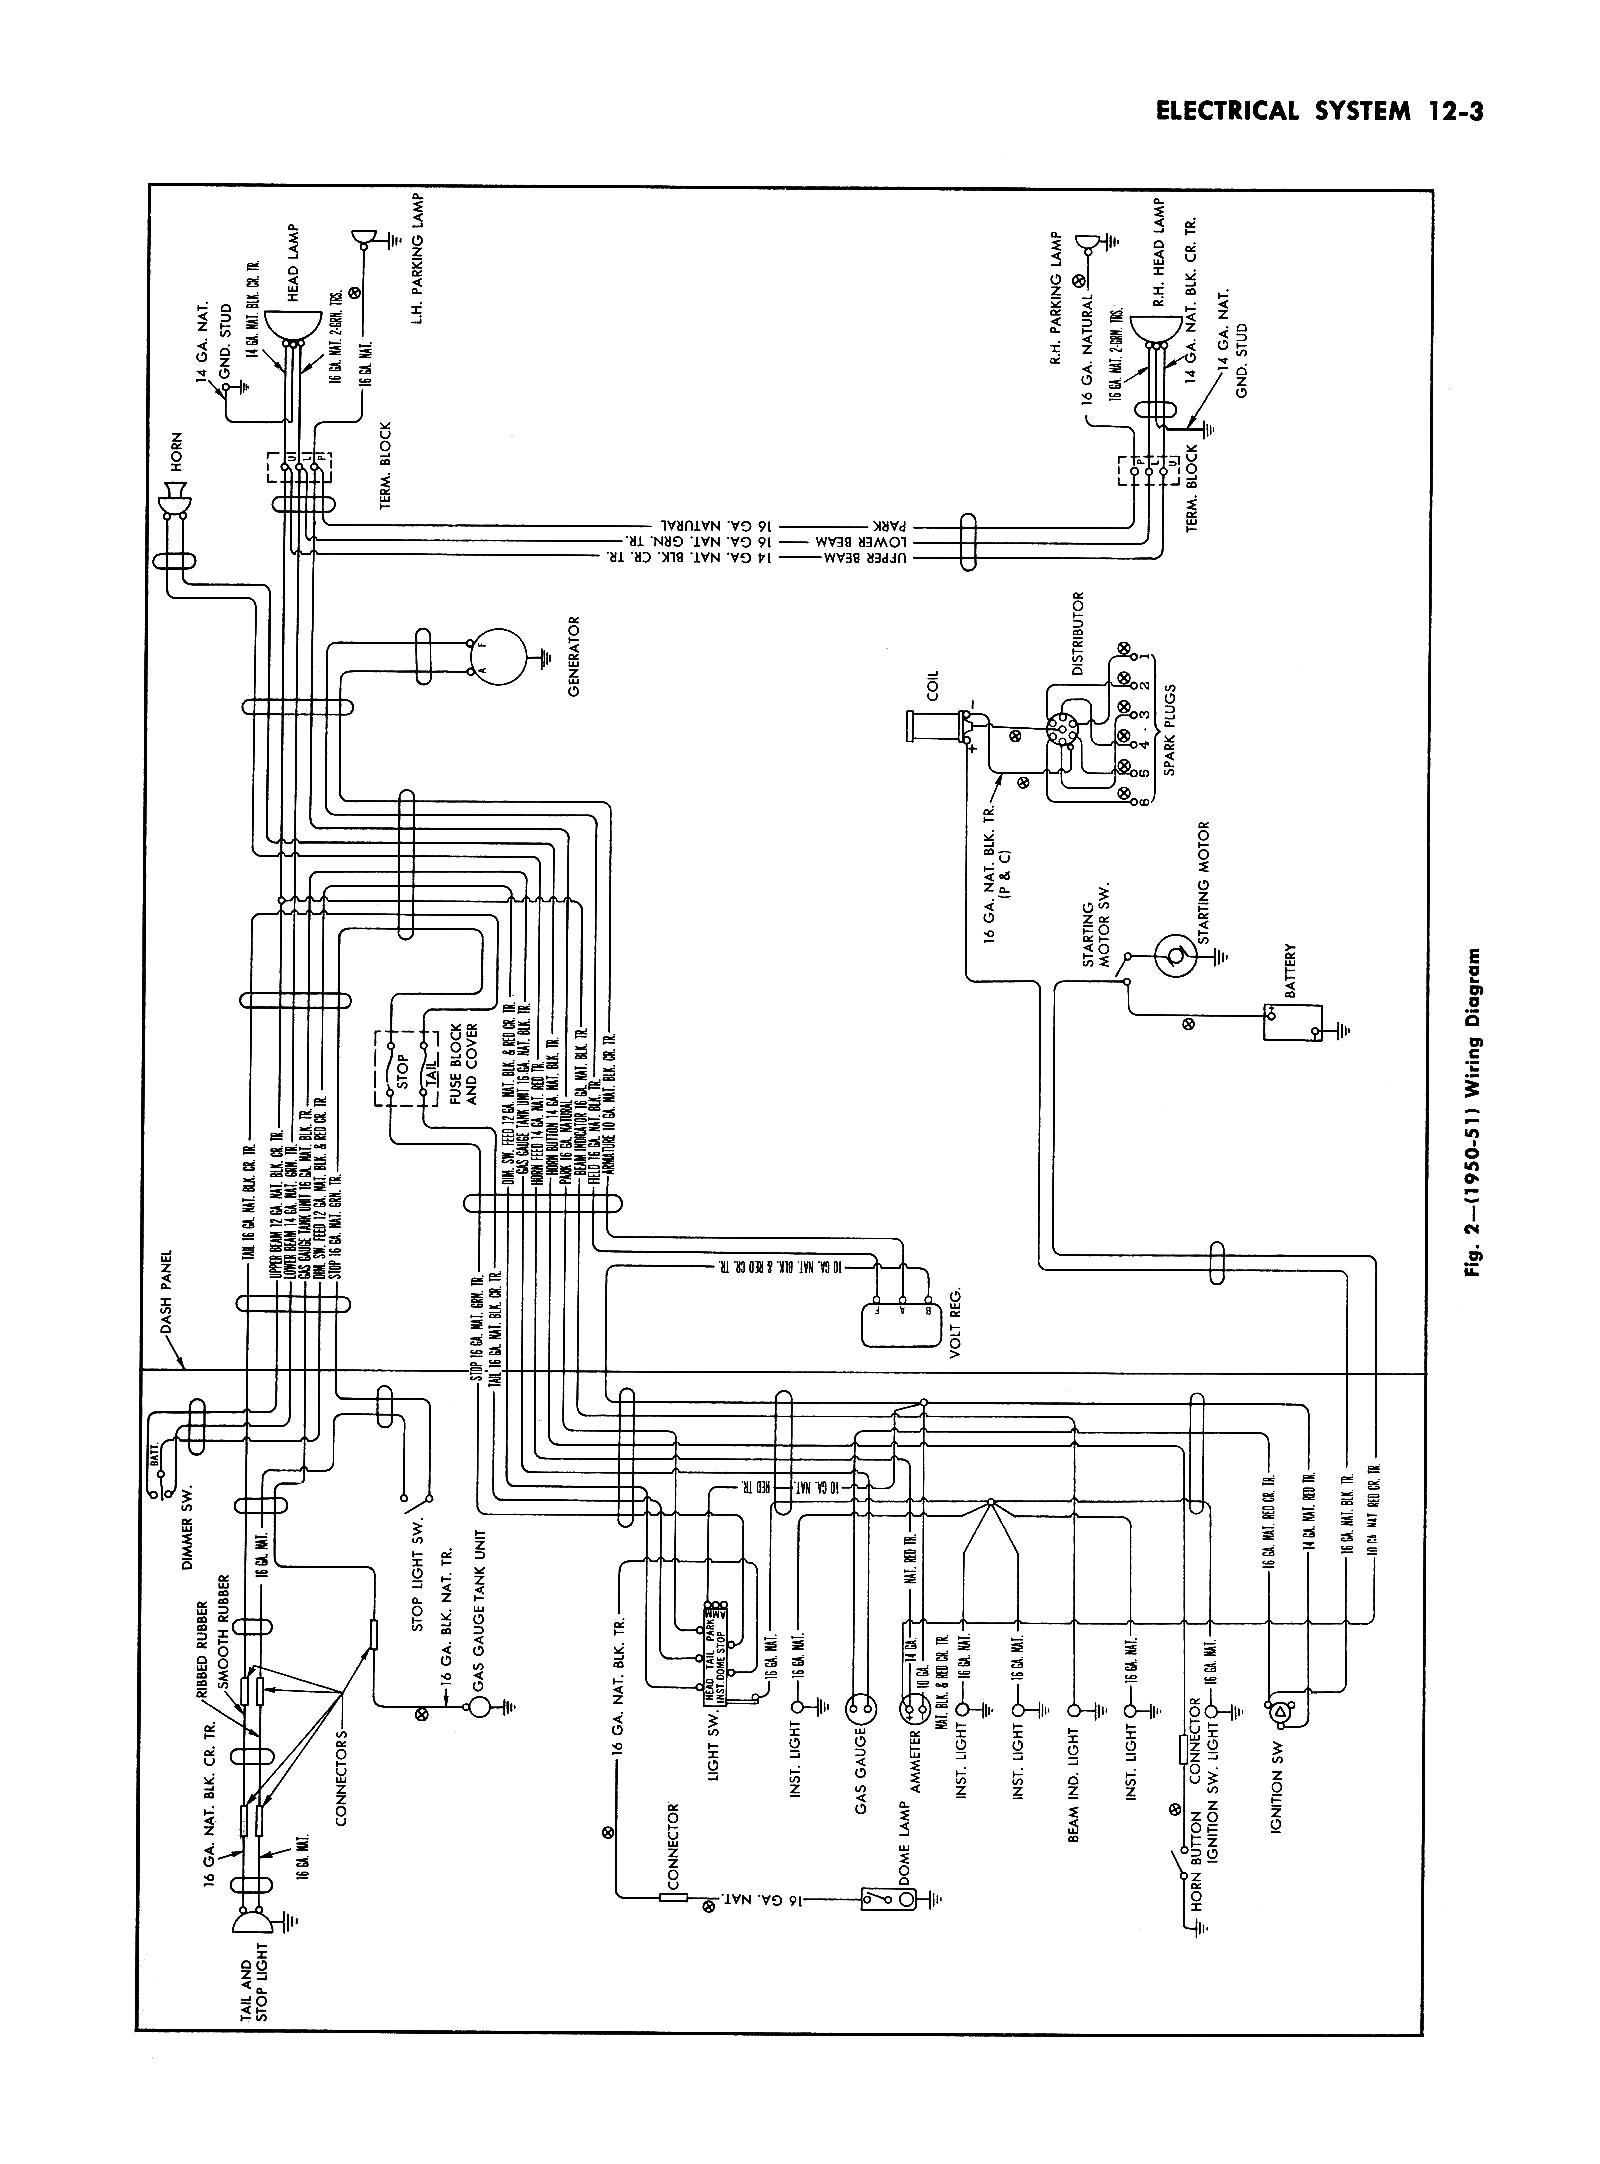 Wiring Diagram For 1949 Ford, Wiring, Get Free Image About